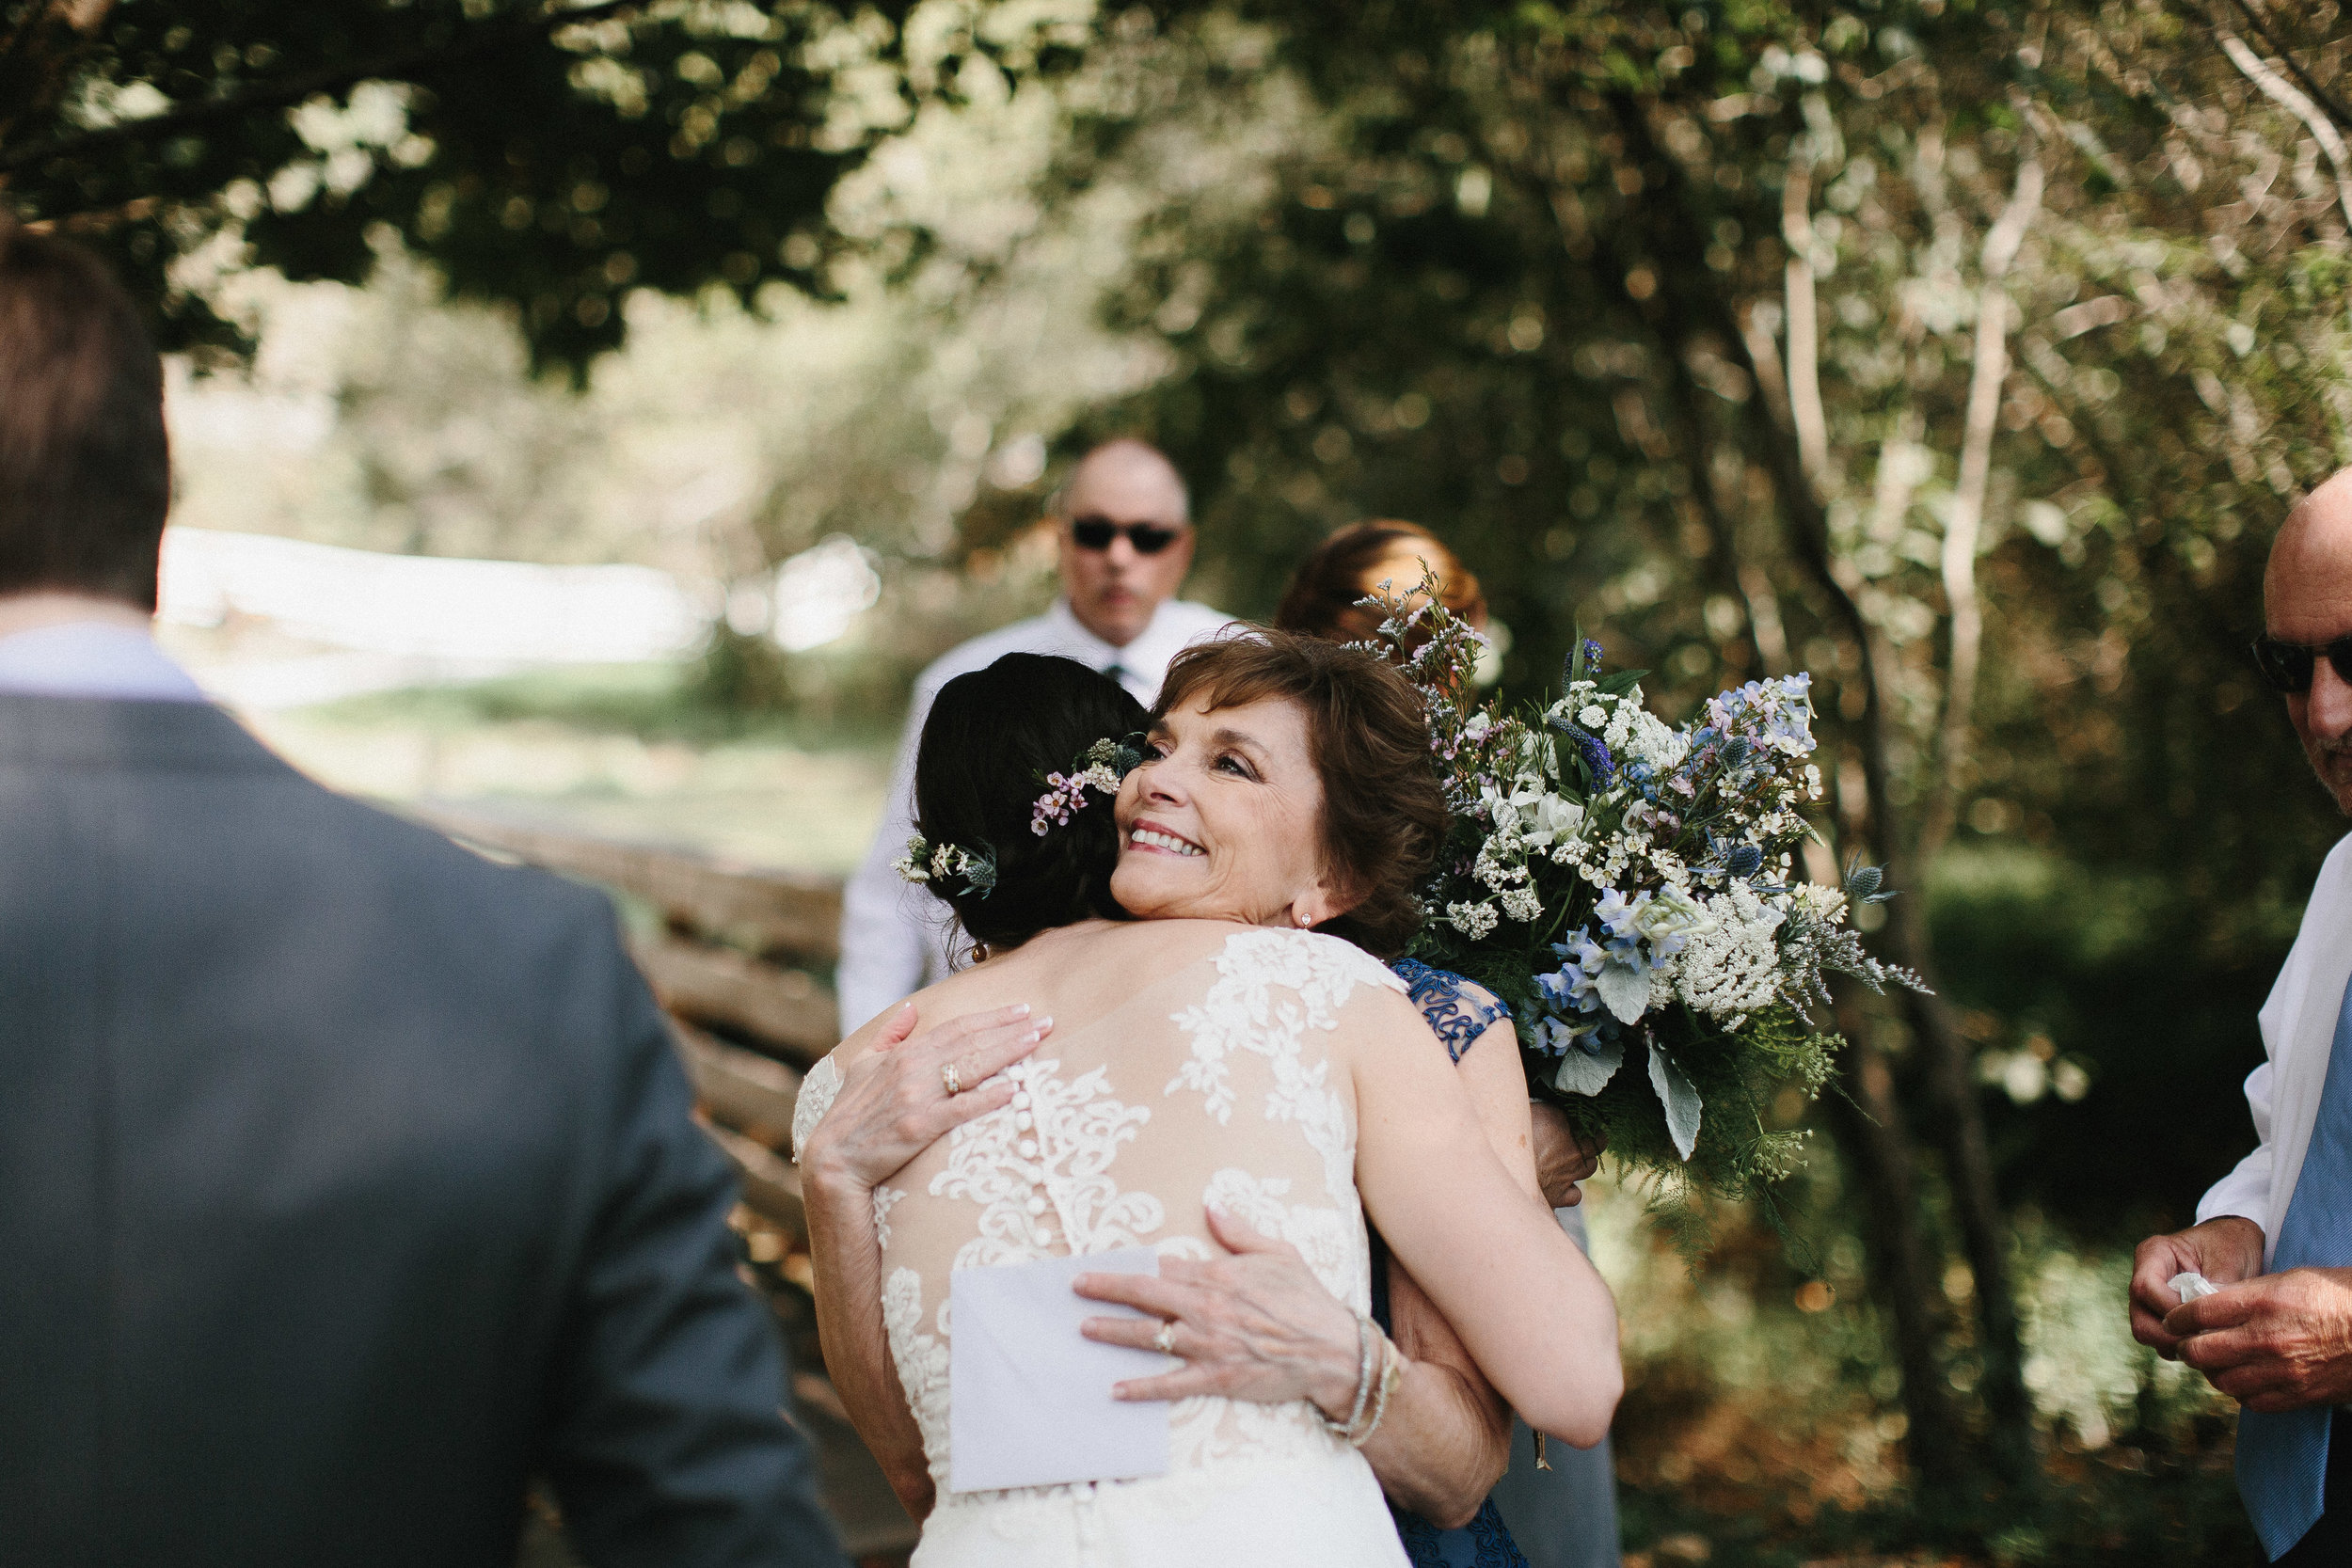 cleveland_georgia_mountain_laurel_farm_natural_classic_timeless_documentary_candid_wedding_emotional_photojournalism_river_west_1270.jpg